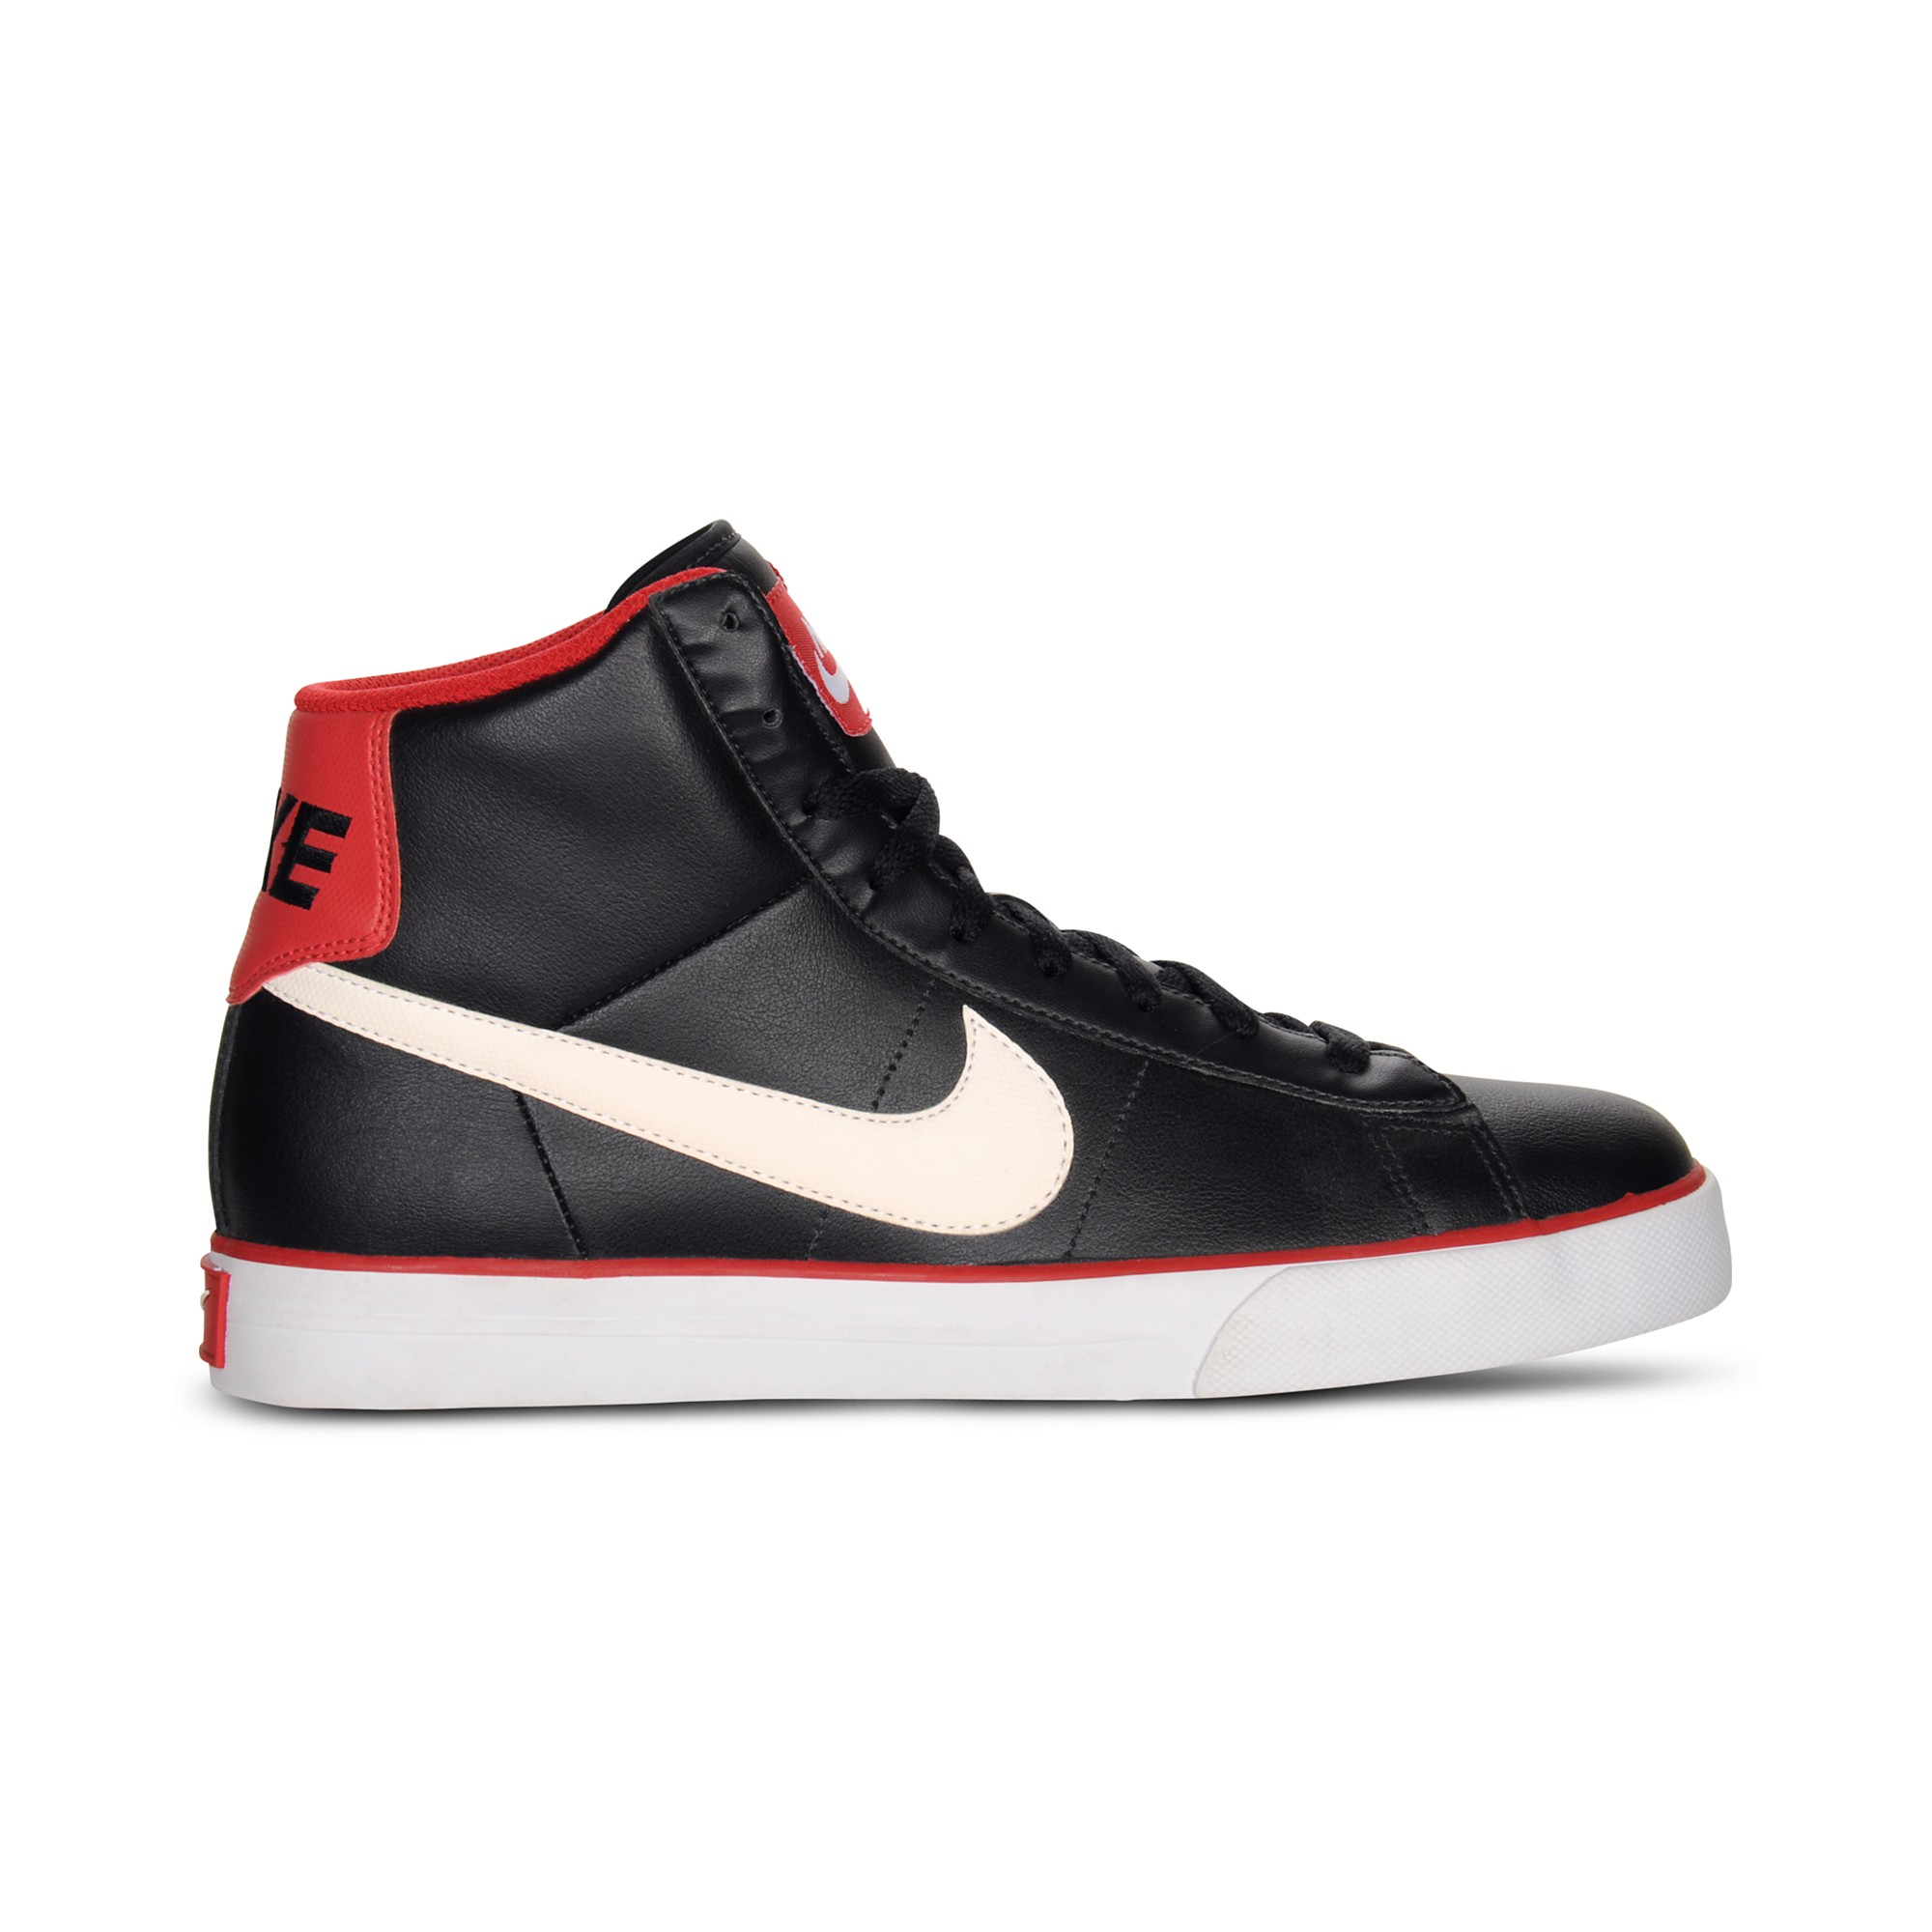 lyst nike sweet classic leather high top sneakers in. Black Bedroom Furniture Sets. Home Design Ideas